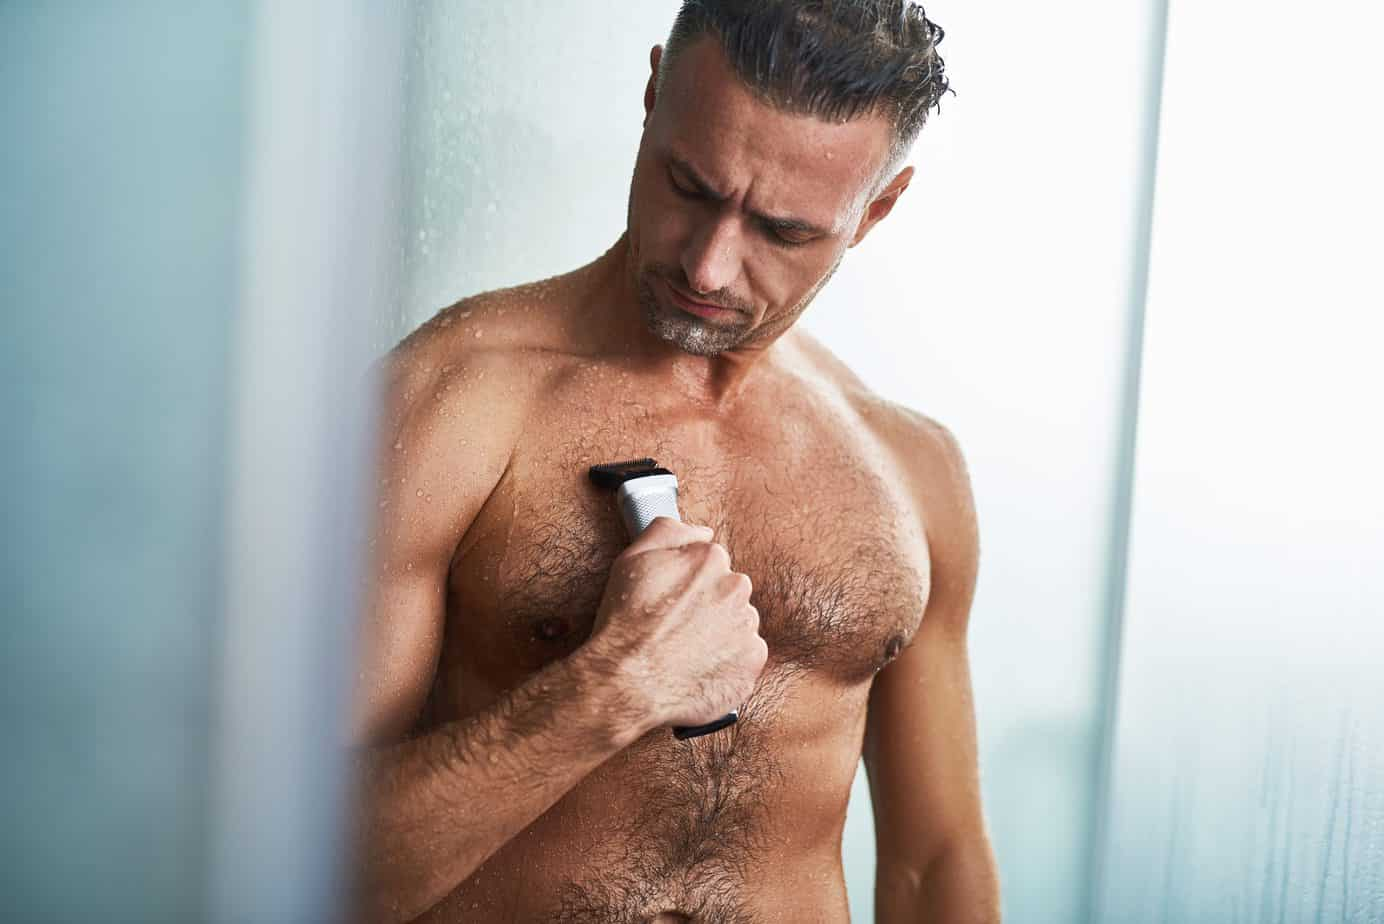 man shaving chest after shower